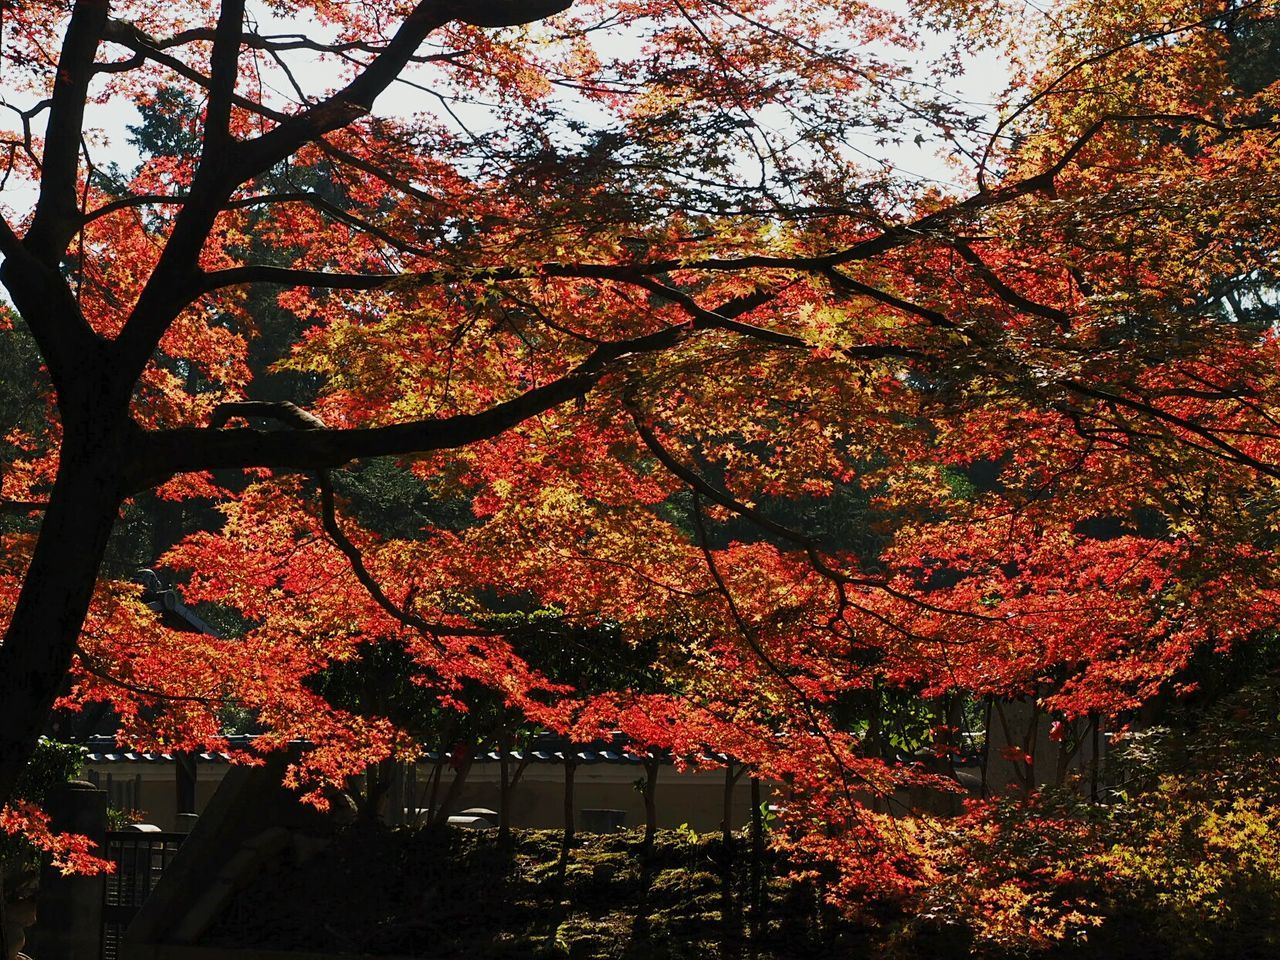 Autumnbeauty Autumn Leaves at Ninna-ji 仁和寺 Kyoto, Japan